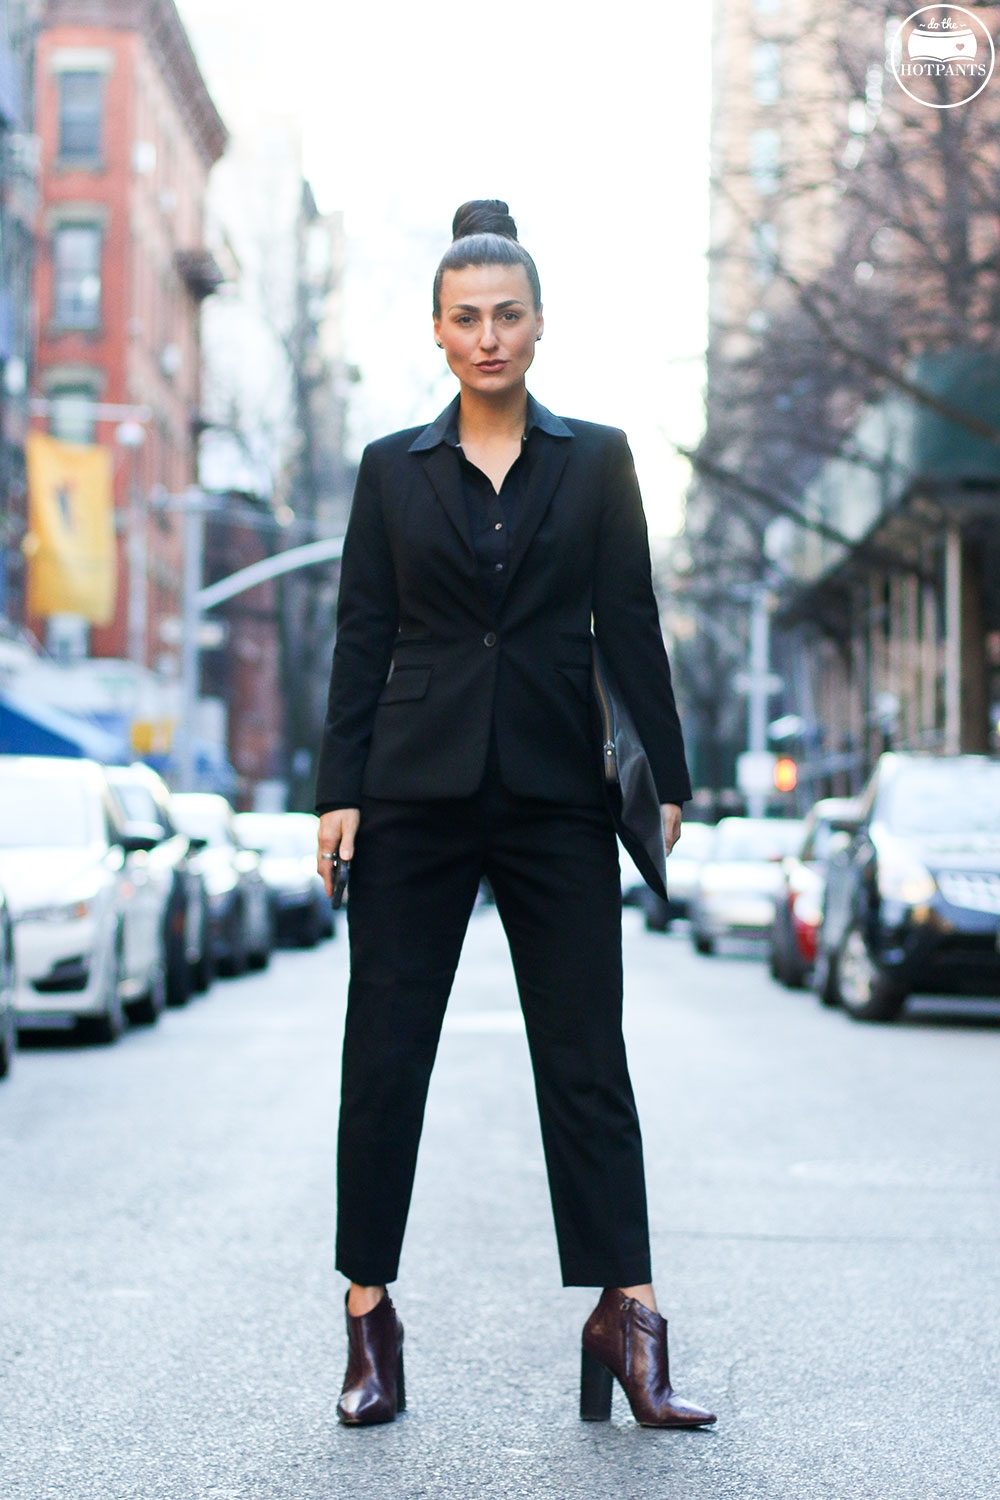 Do The Hotpants Dana Suchow Professional Outfit Interview Suit Woman in Suit Pantsuit Pant Suit Updo Female Business Attire IMG_6064